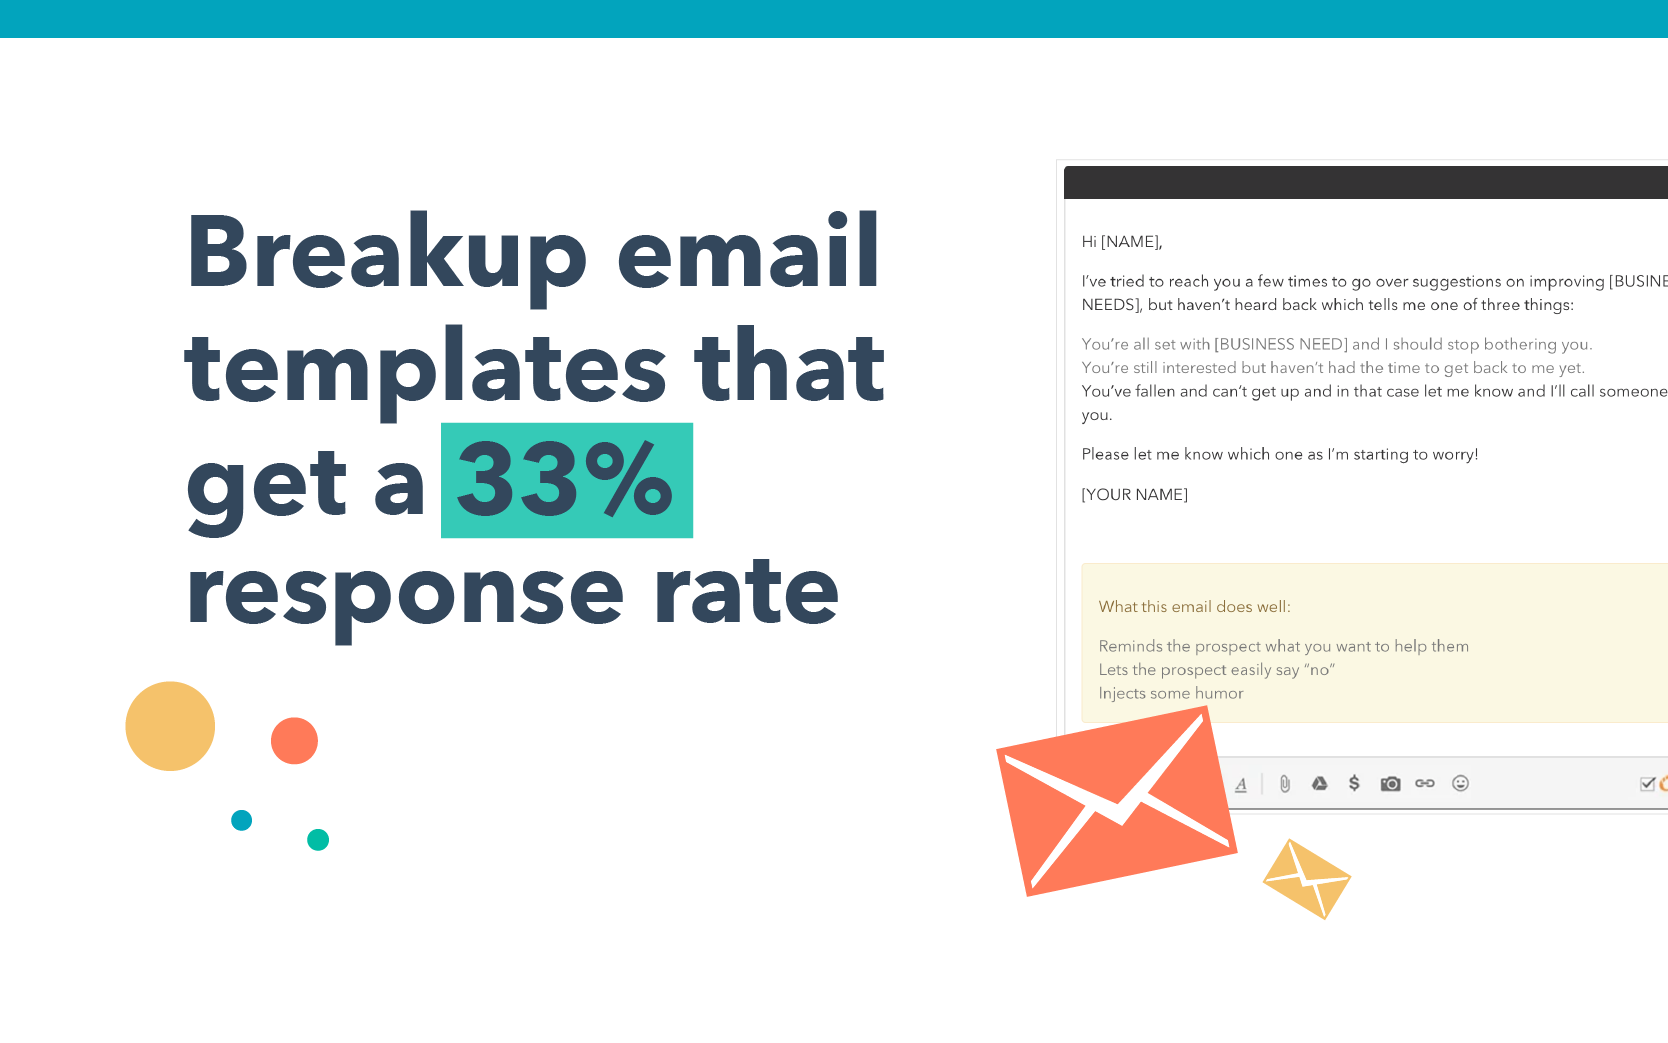 Breakup email templates that get a 33% response rate